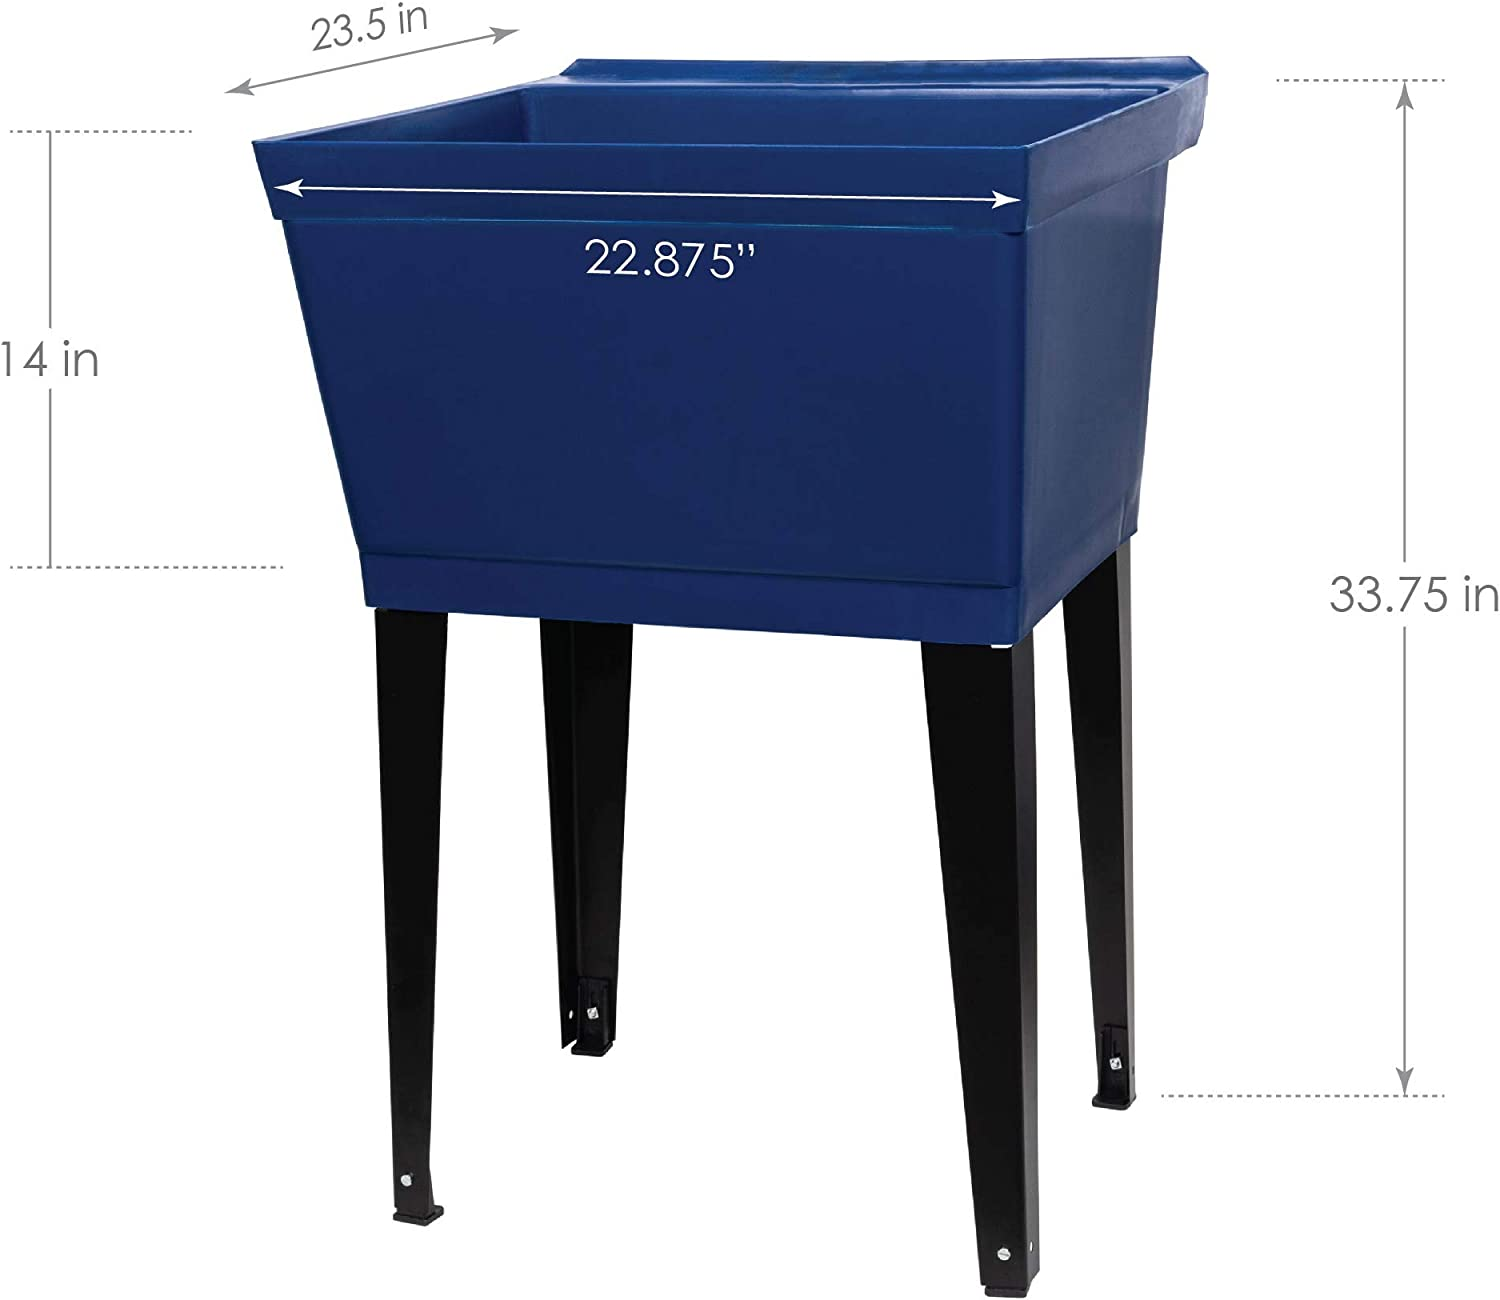 Heavy Duty Shop Sink Basement Blue or Garage Workshop 19 Gallon Utility Sink Laundry Tub by JS Jackson Supplies with Adjustable Metal Legs Ideal for Laundry room No Faucet Included